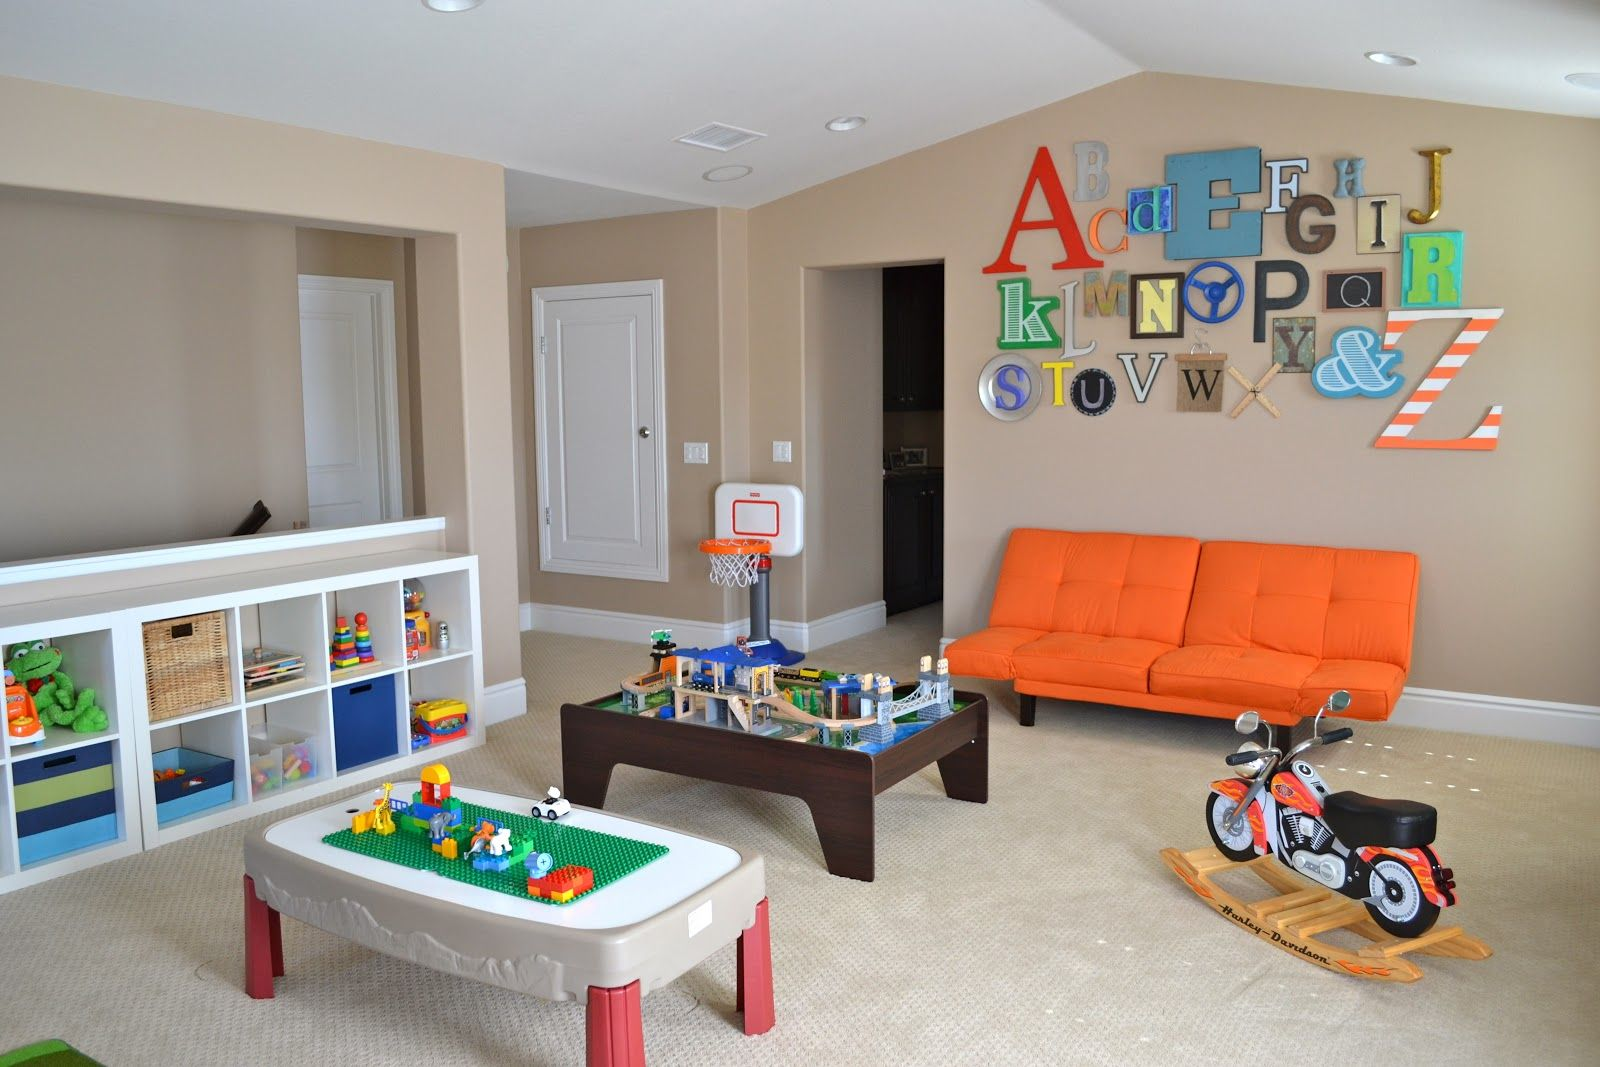 Playrooms For Kids kids playroom ideas - google search love the letters on the wall